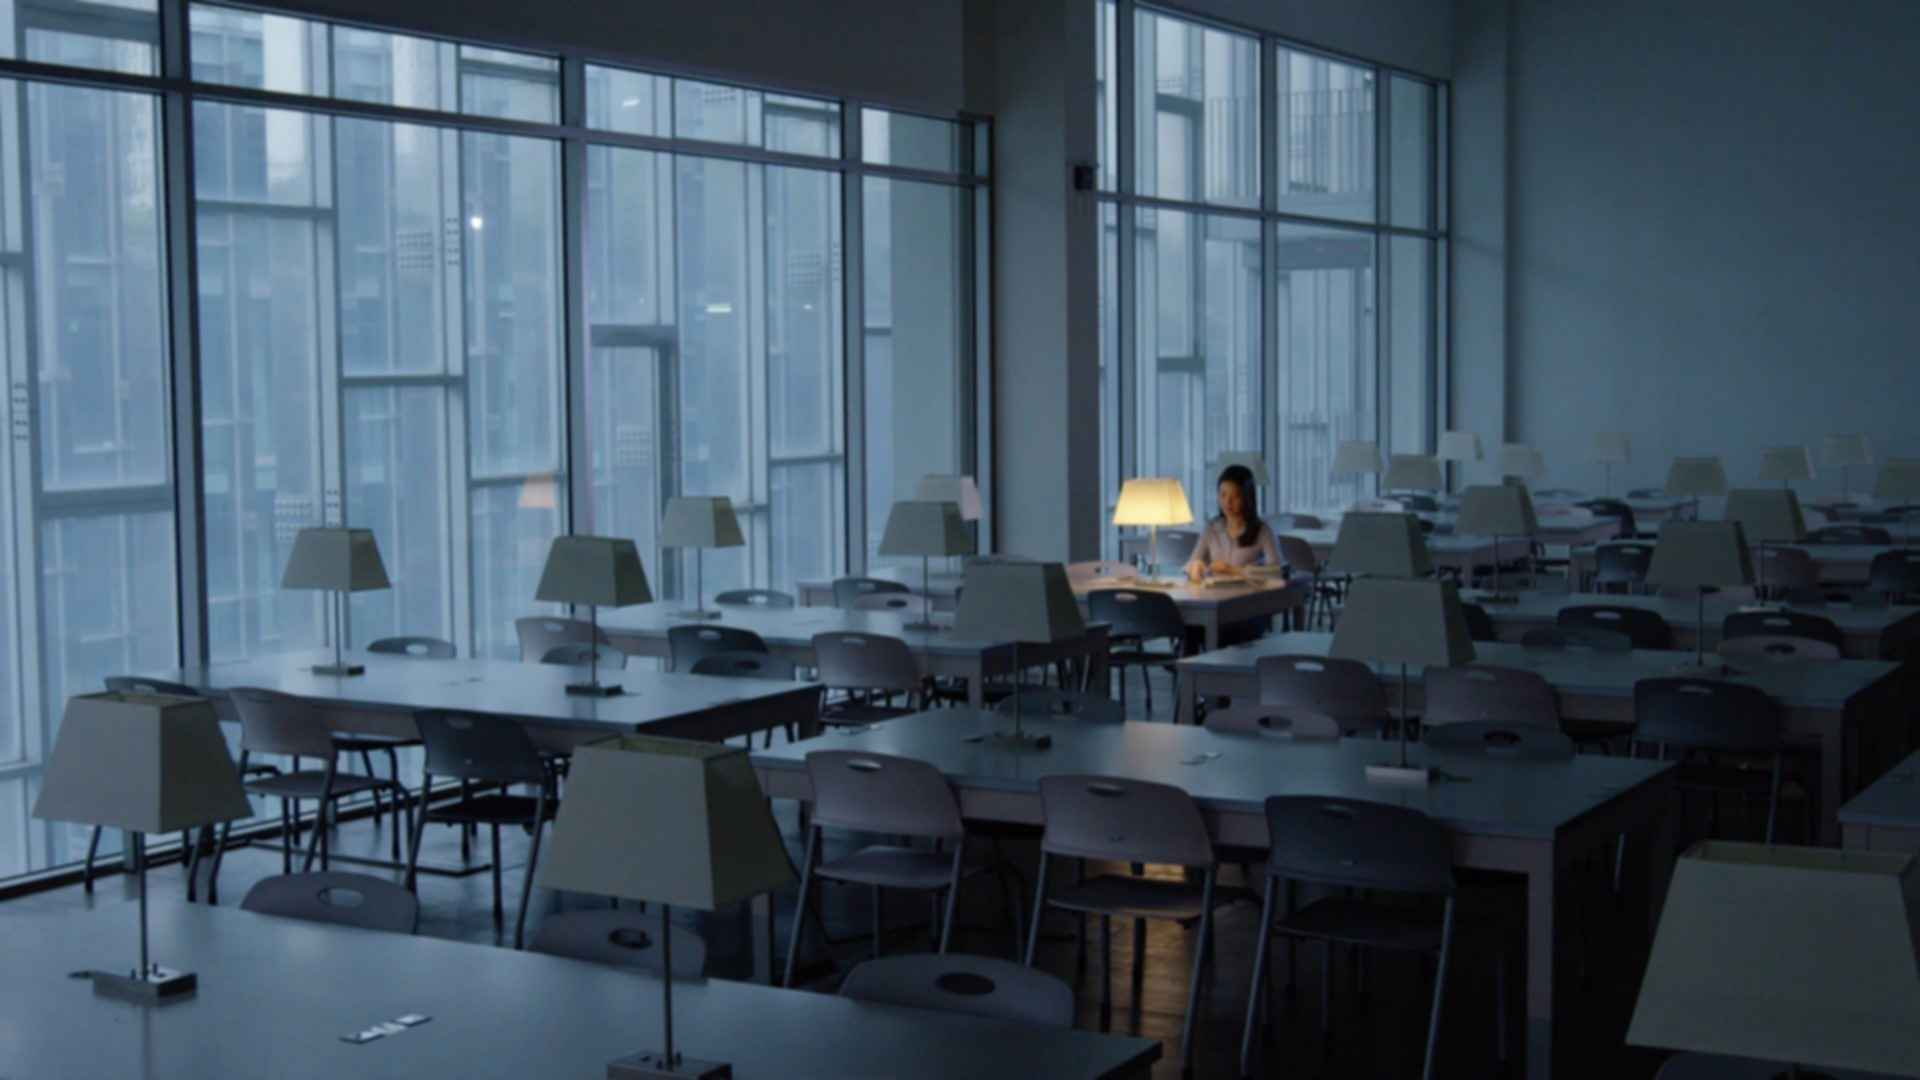 Ewha Womans University - Interior/Working Space